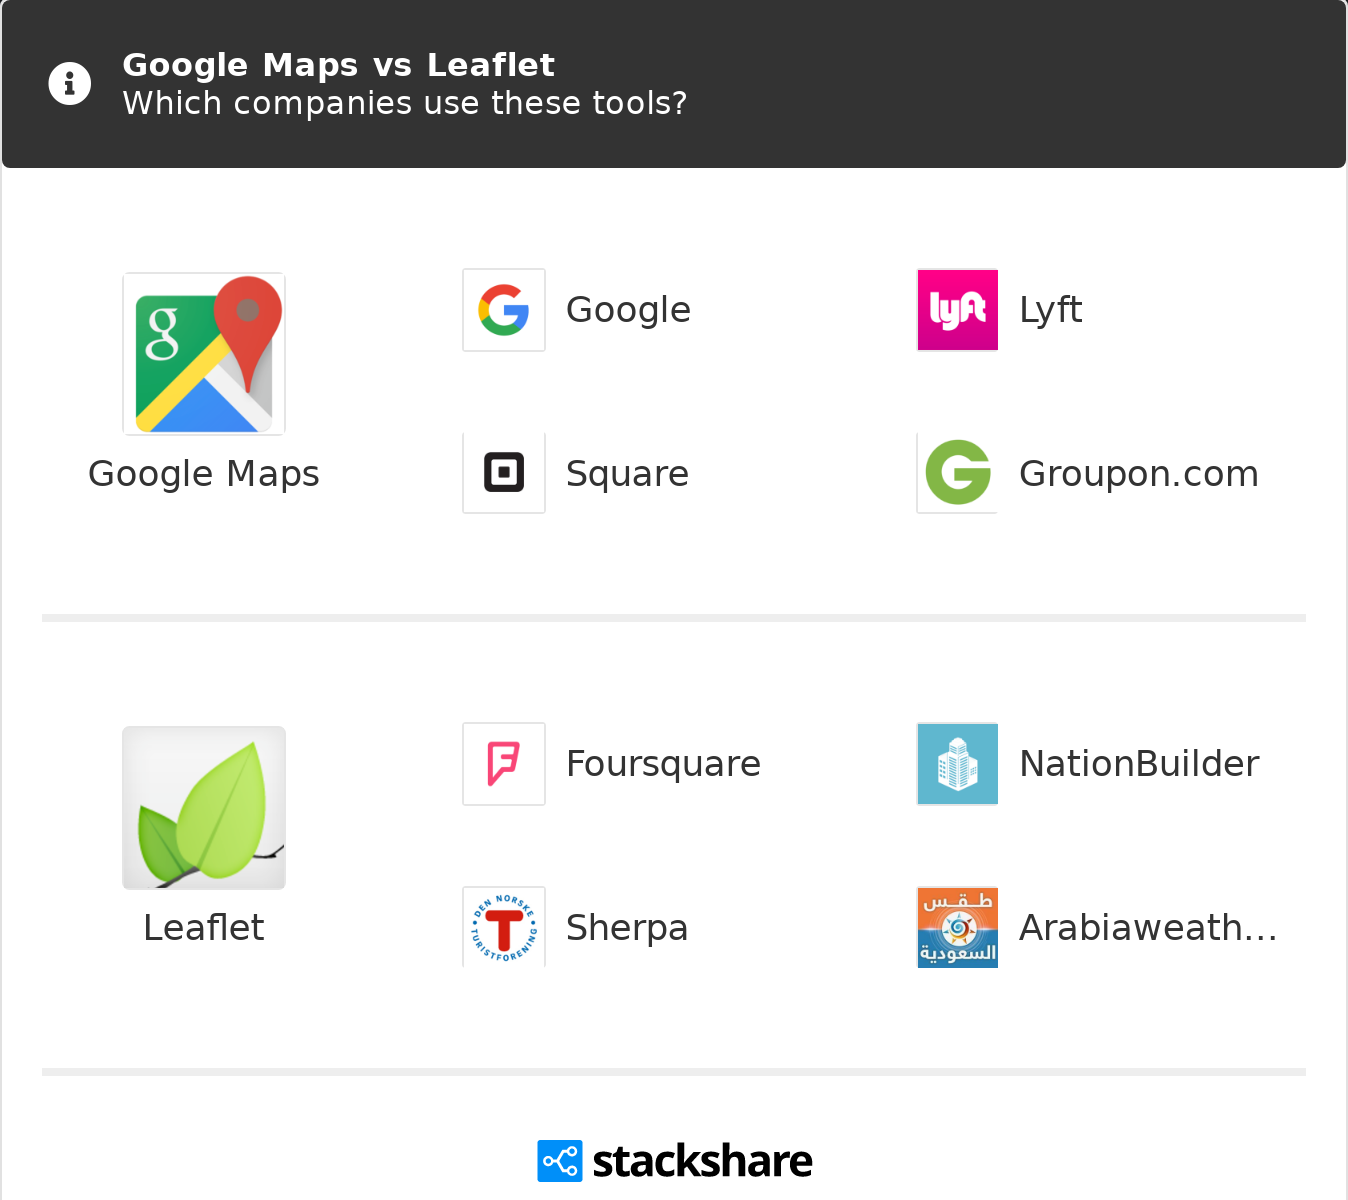 Google Maps vs Leaflet | What are the differences?